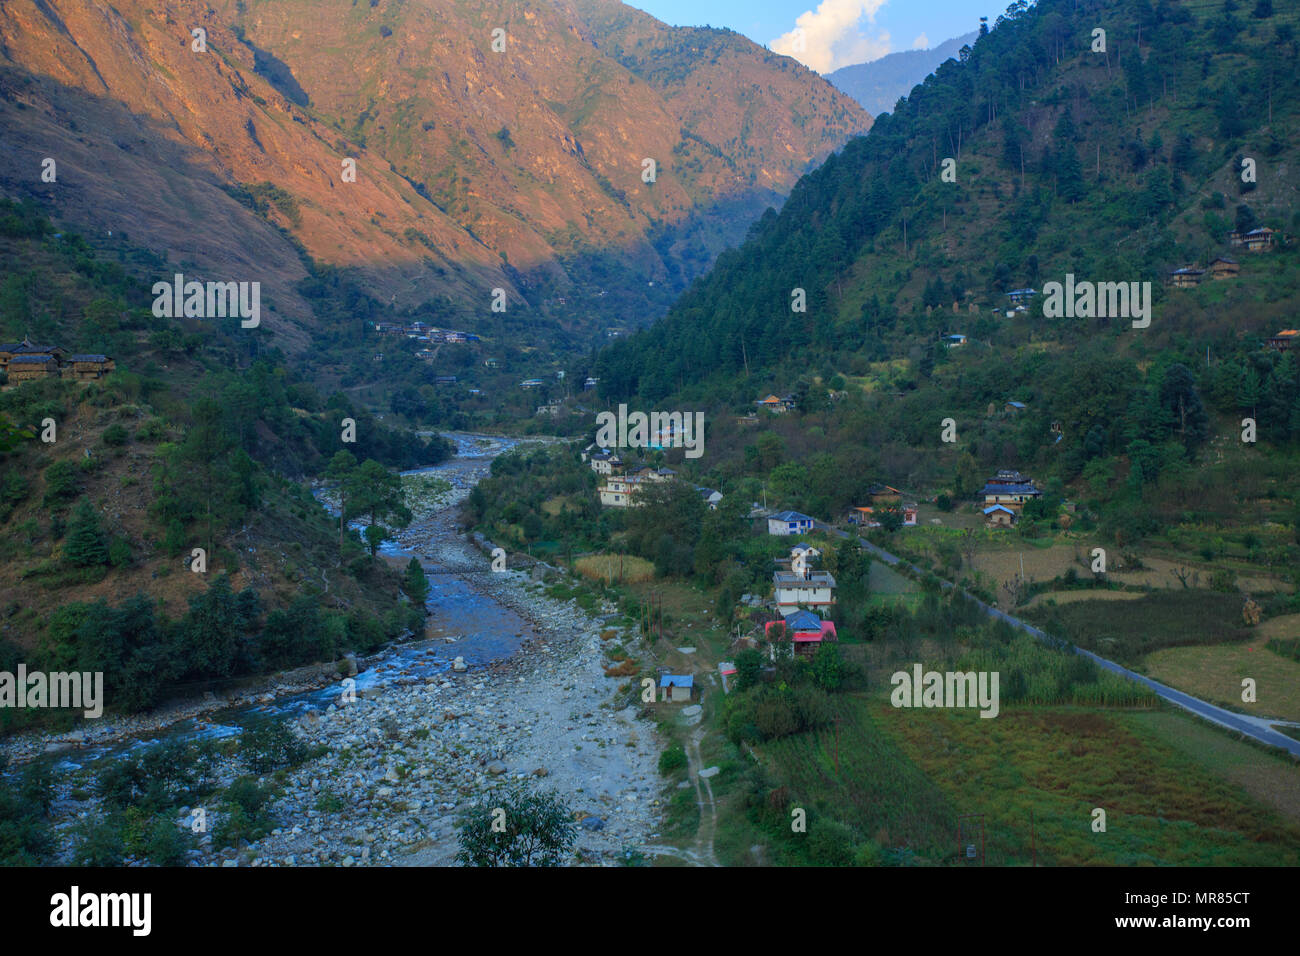 A picturesque village in Tirthan Valley (Himachal Pradesh, India) - Stock Image